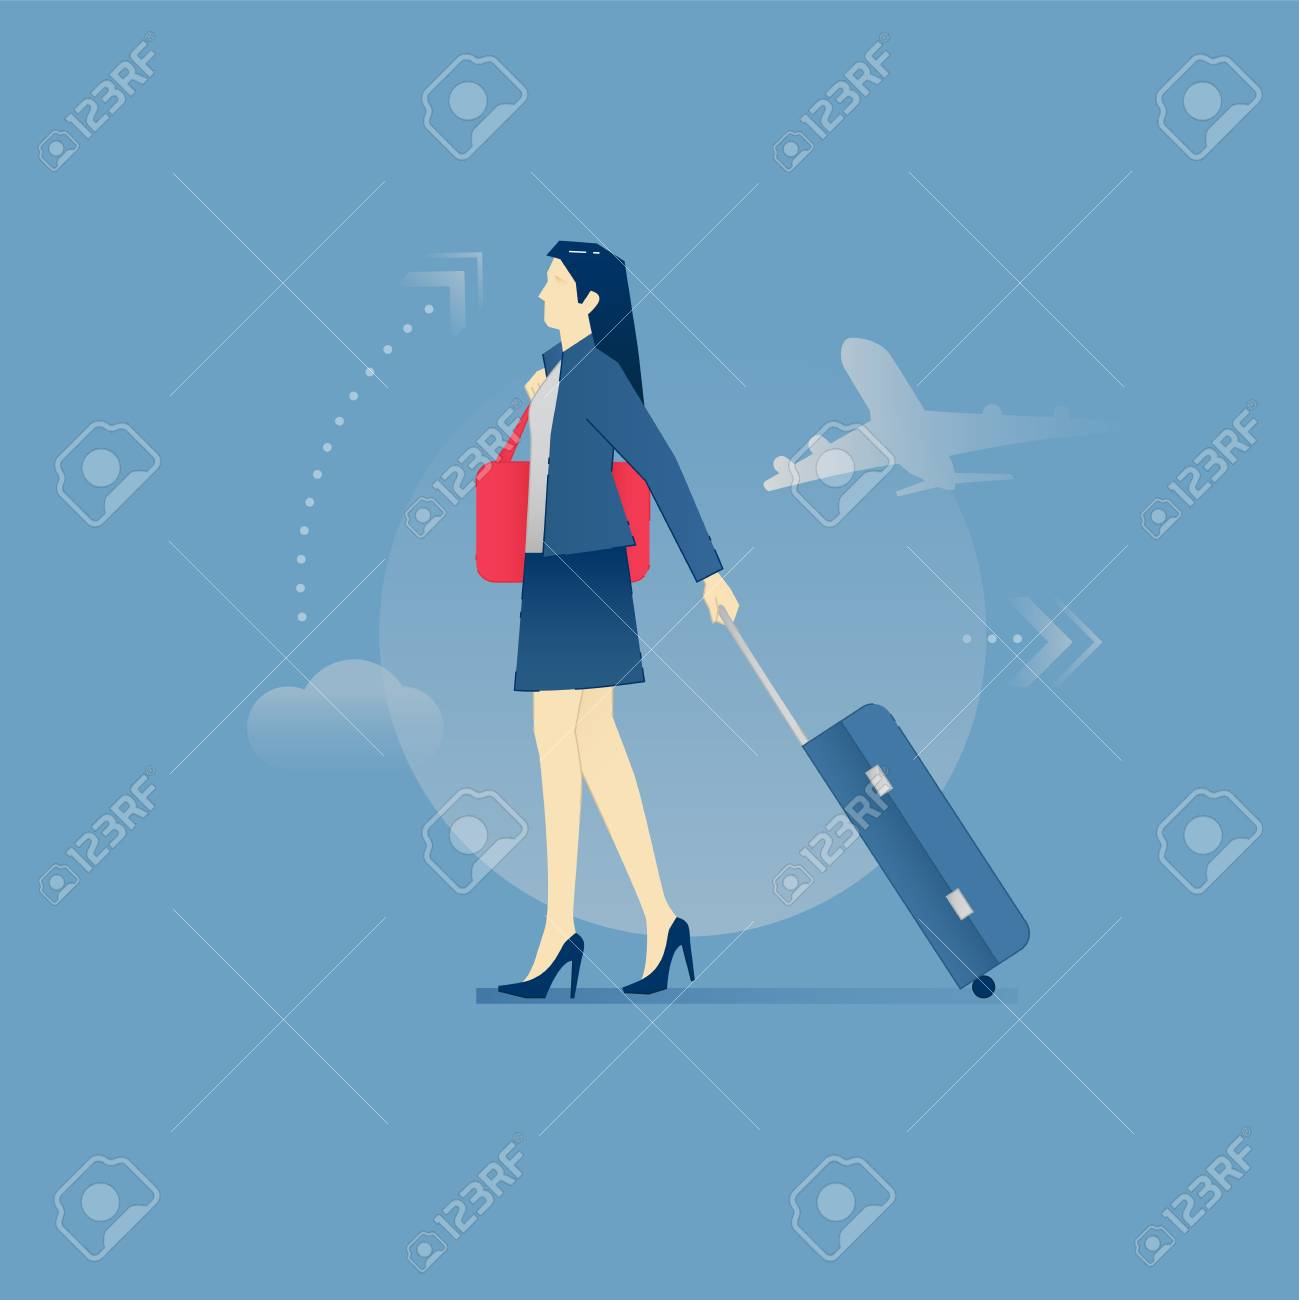 Young Business Woman Carrying Her Suitcase On Wheels In A